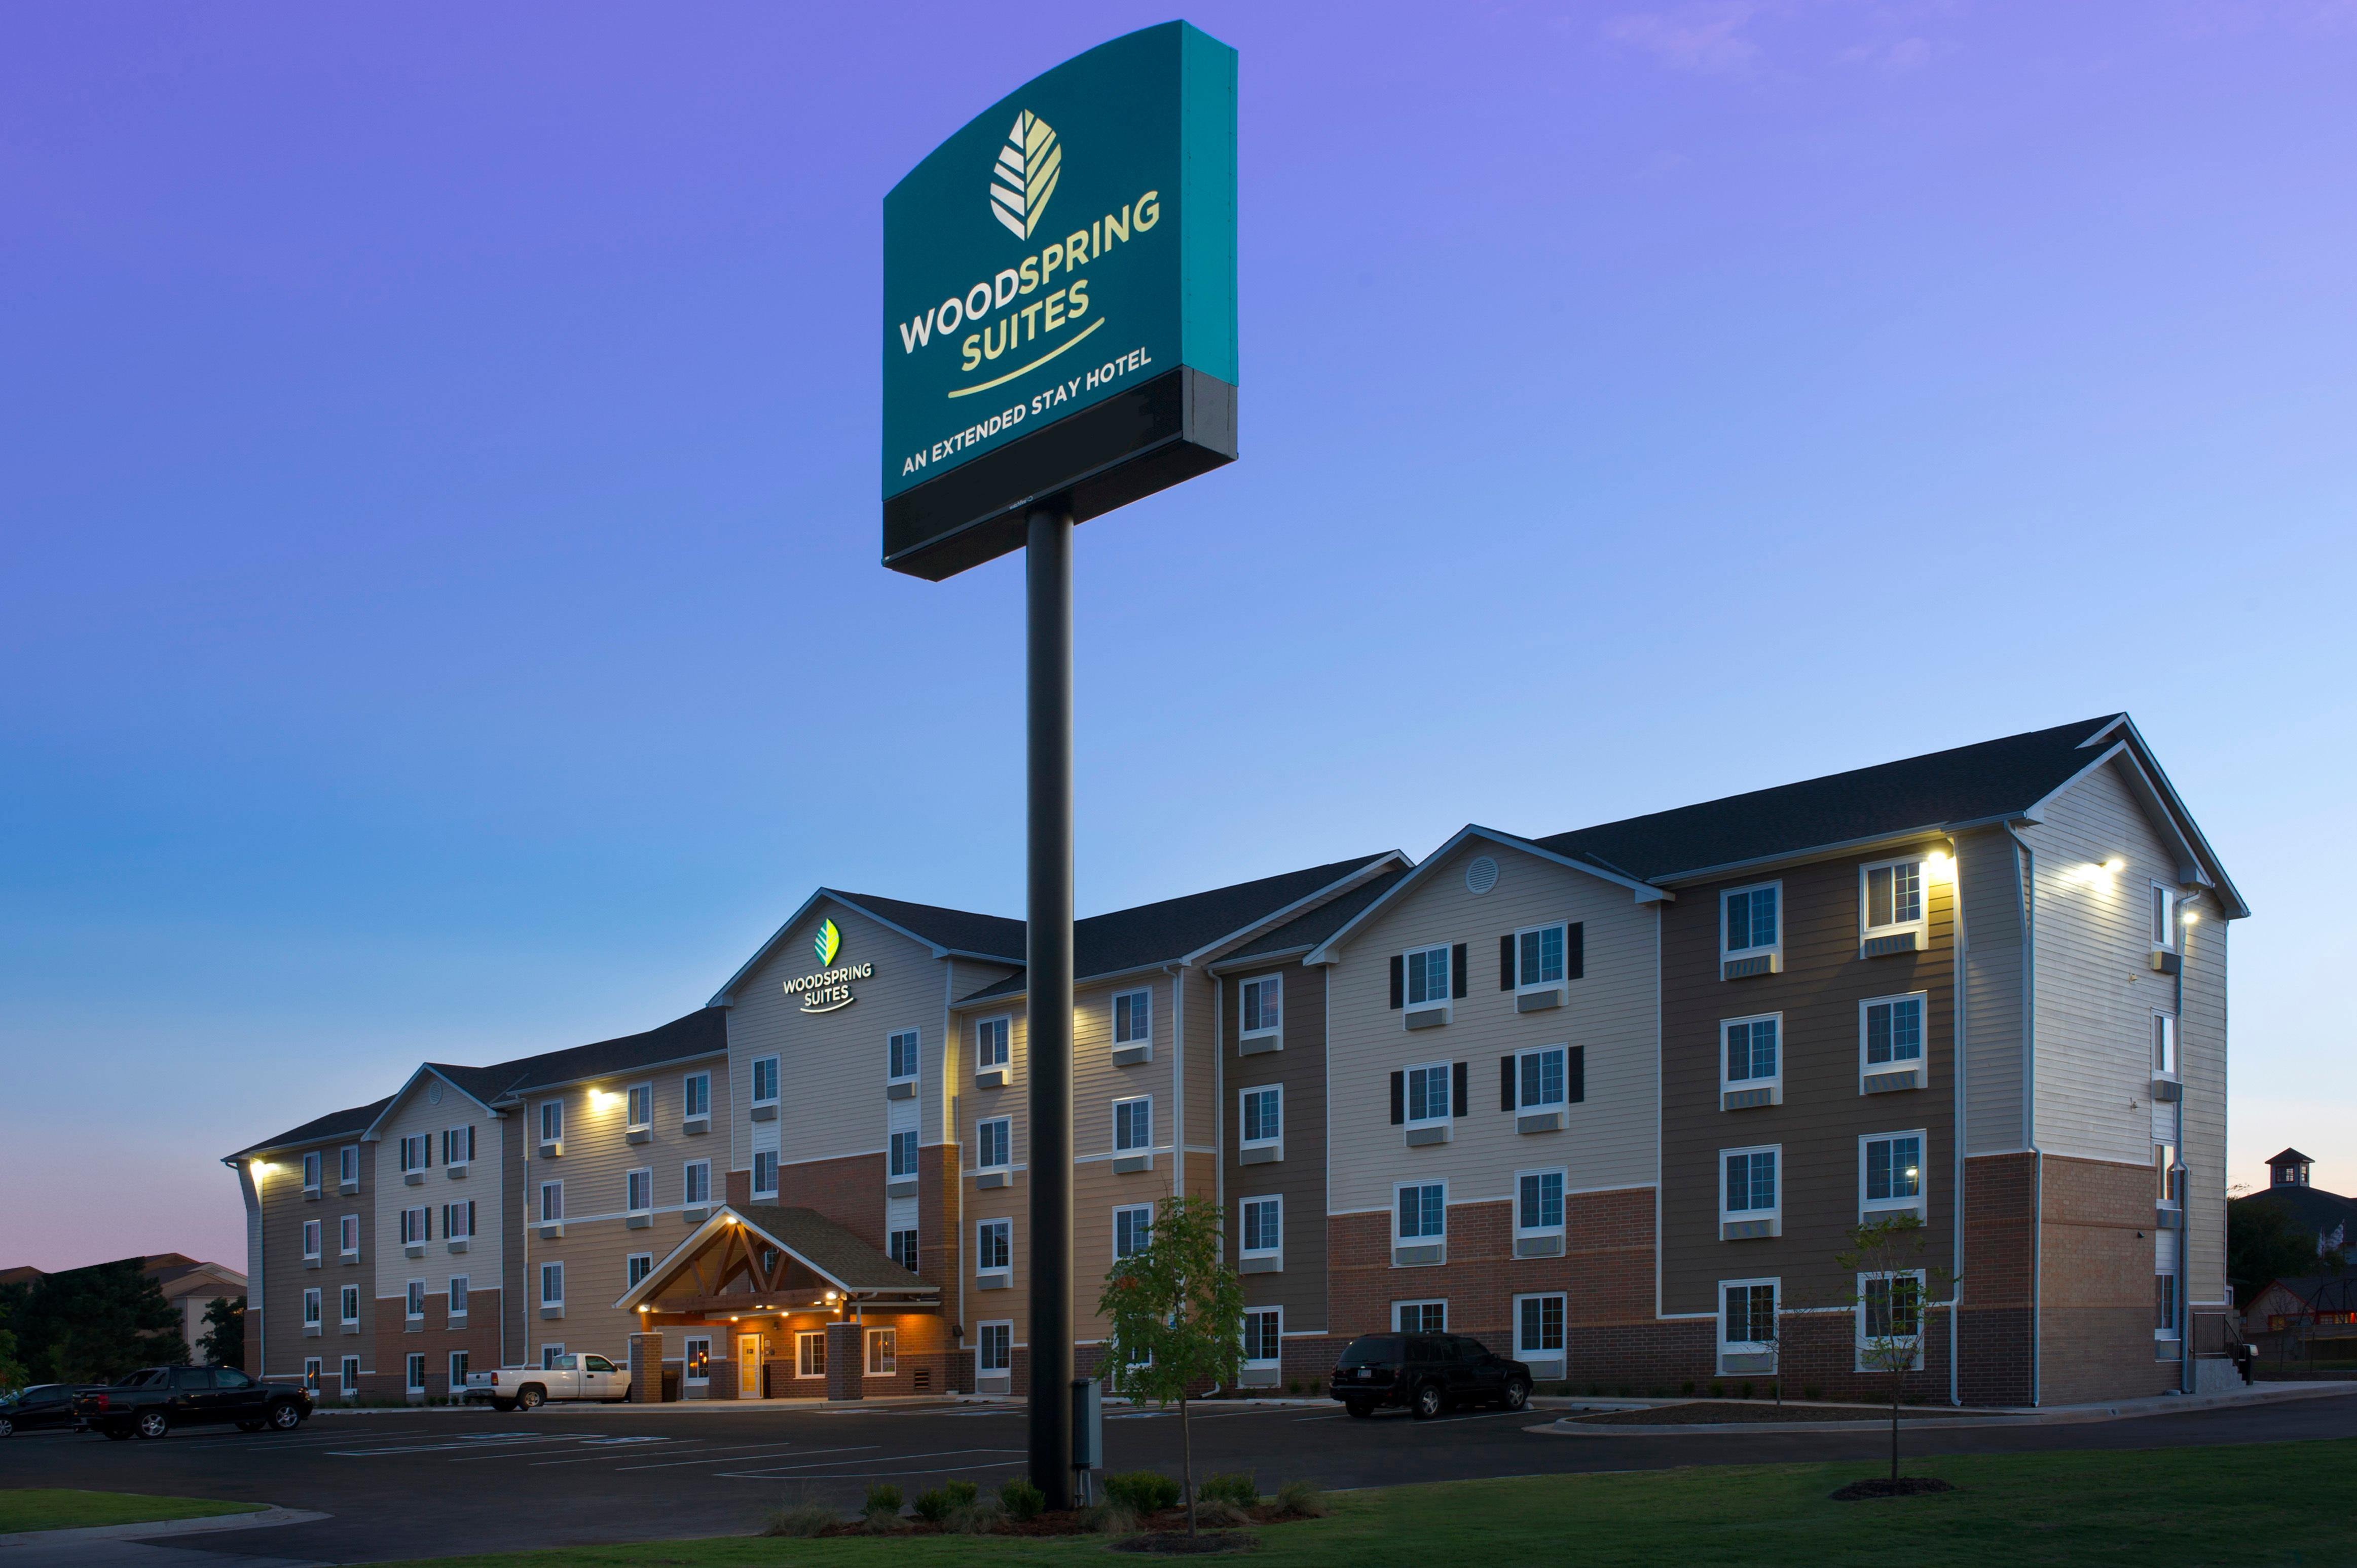 WoodSpring Suites Oklahoma City Airport image 1